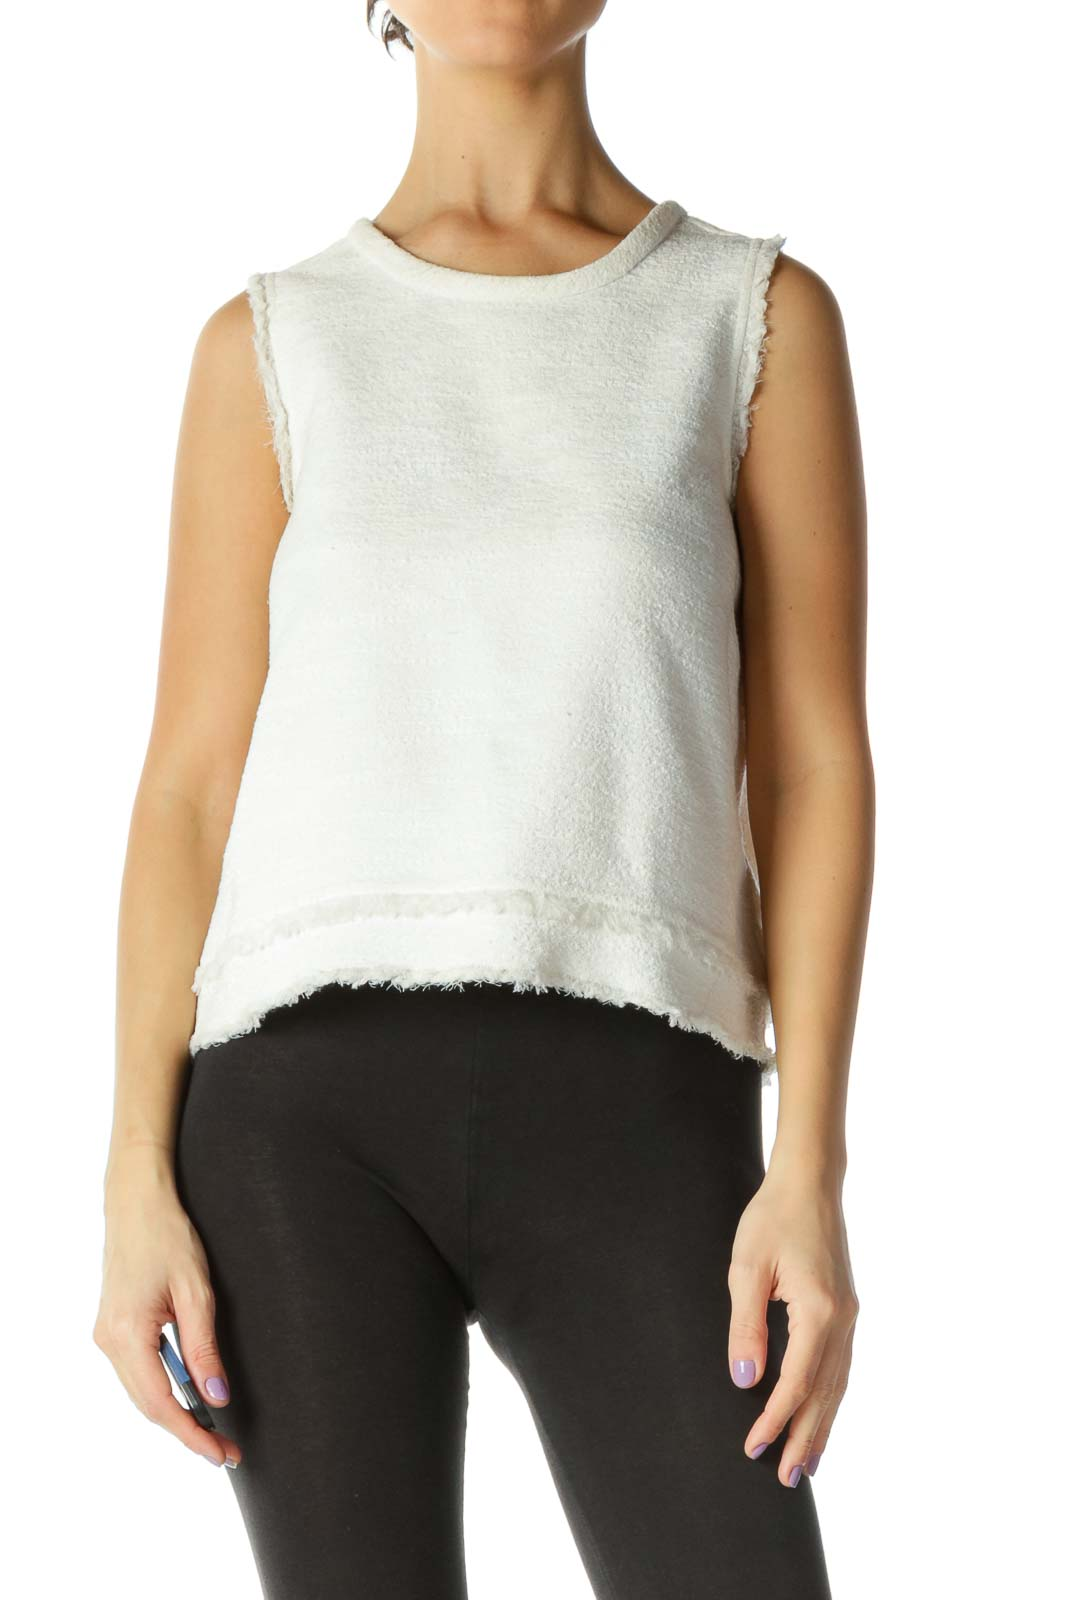 White Solid Casual Blouse Top Front